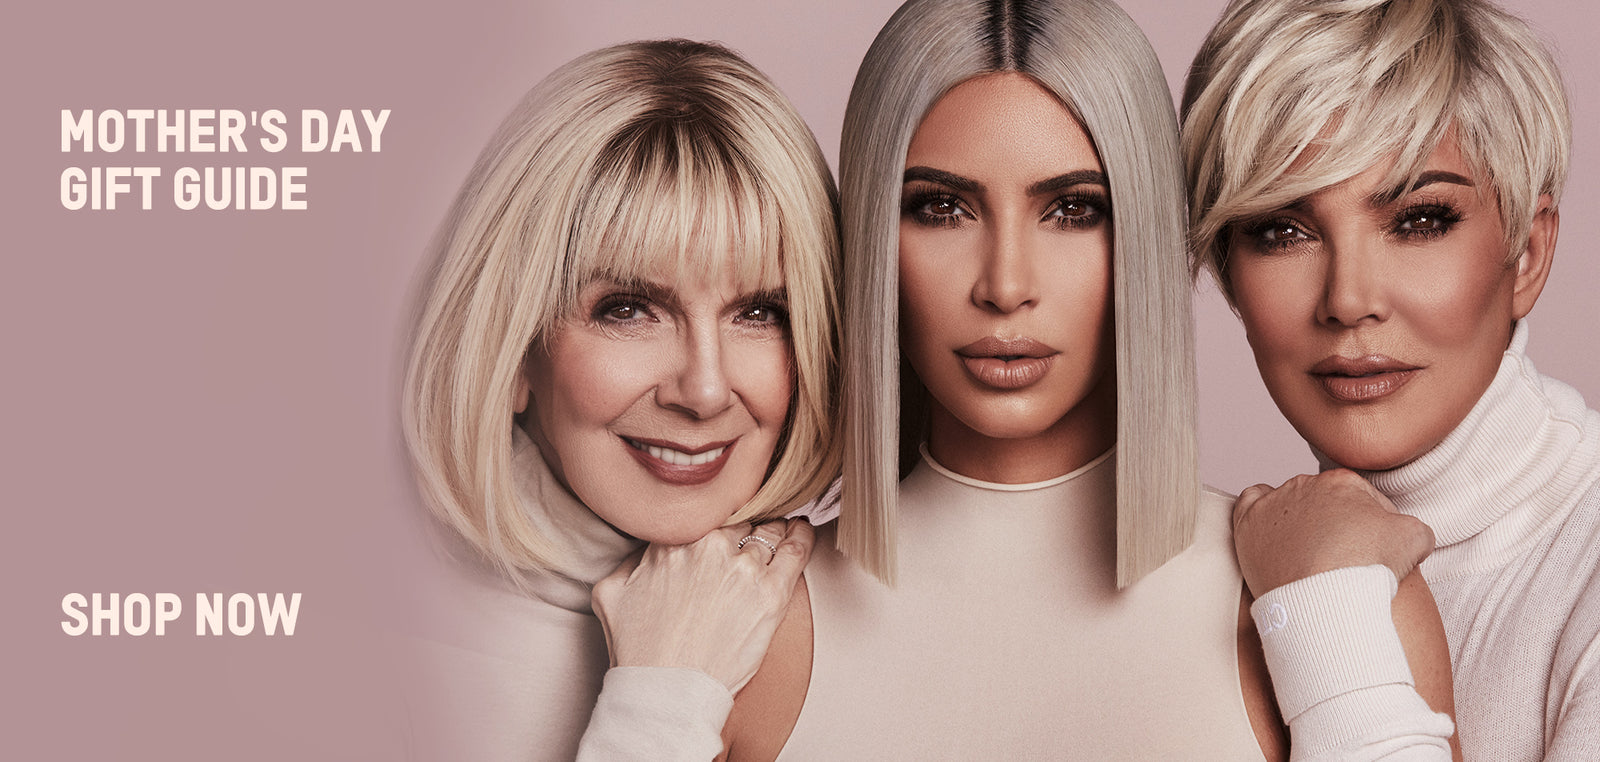 KKW Buy One, Get One